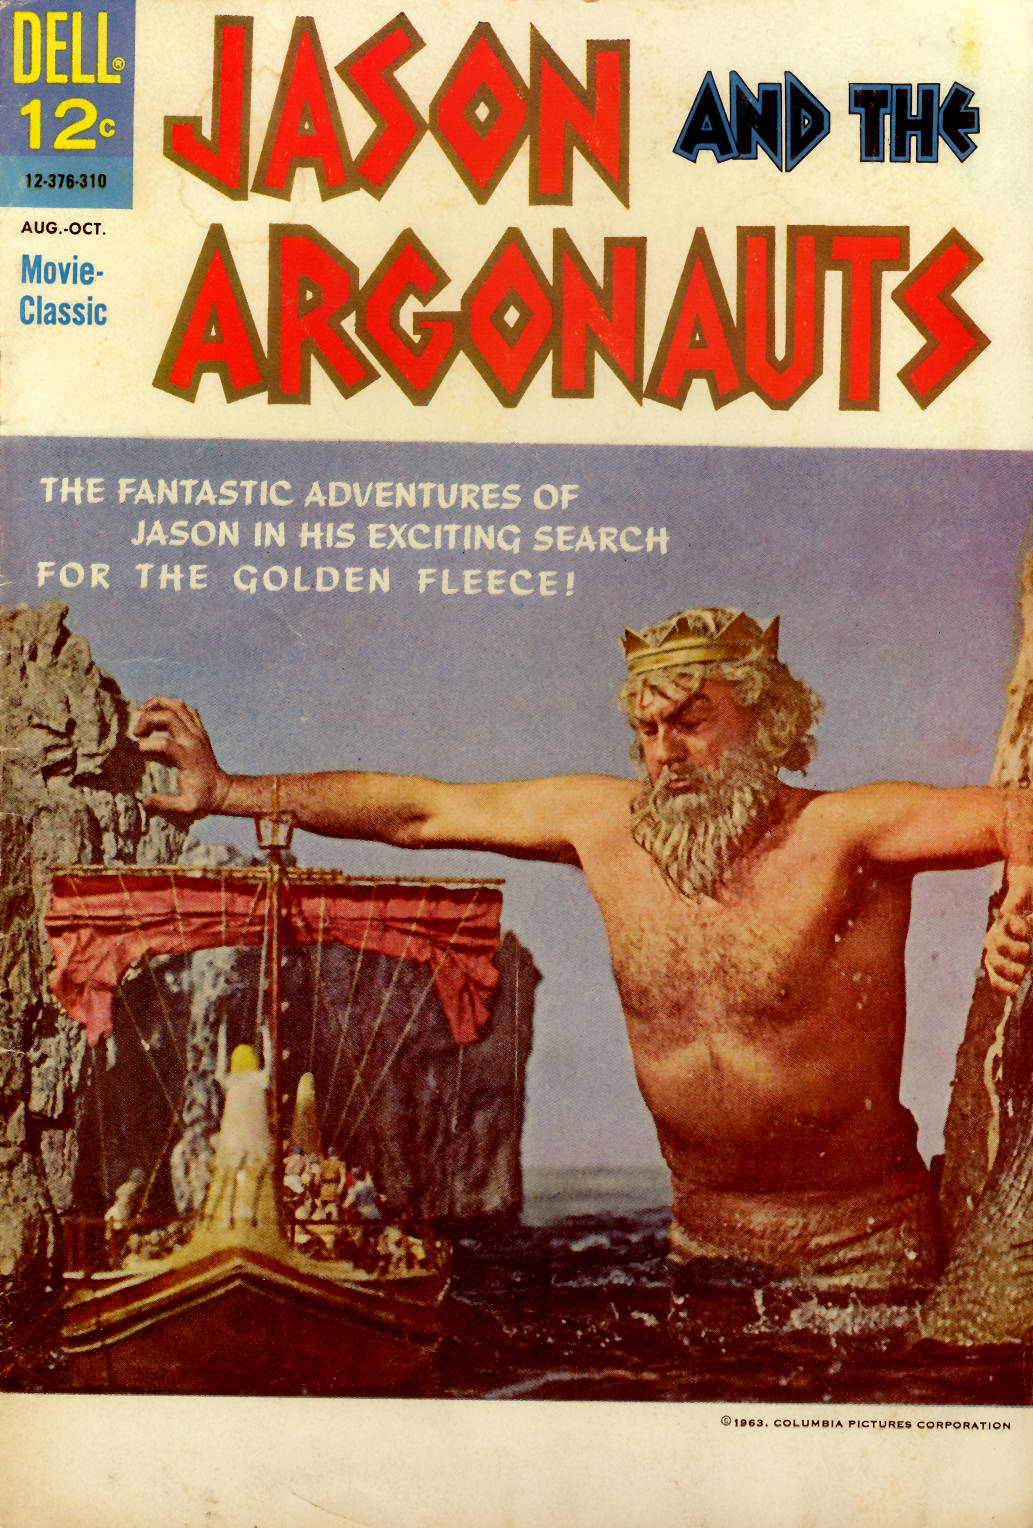 jason_and_the_argonauts-dell